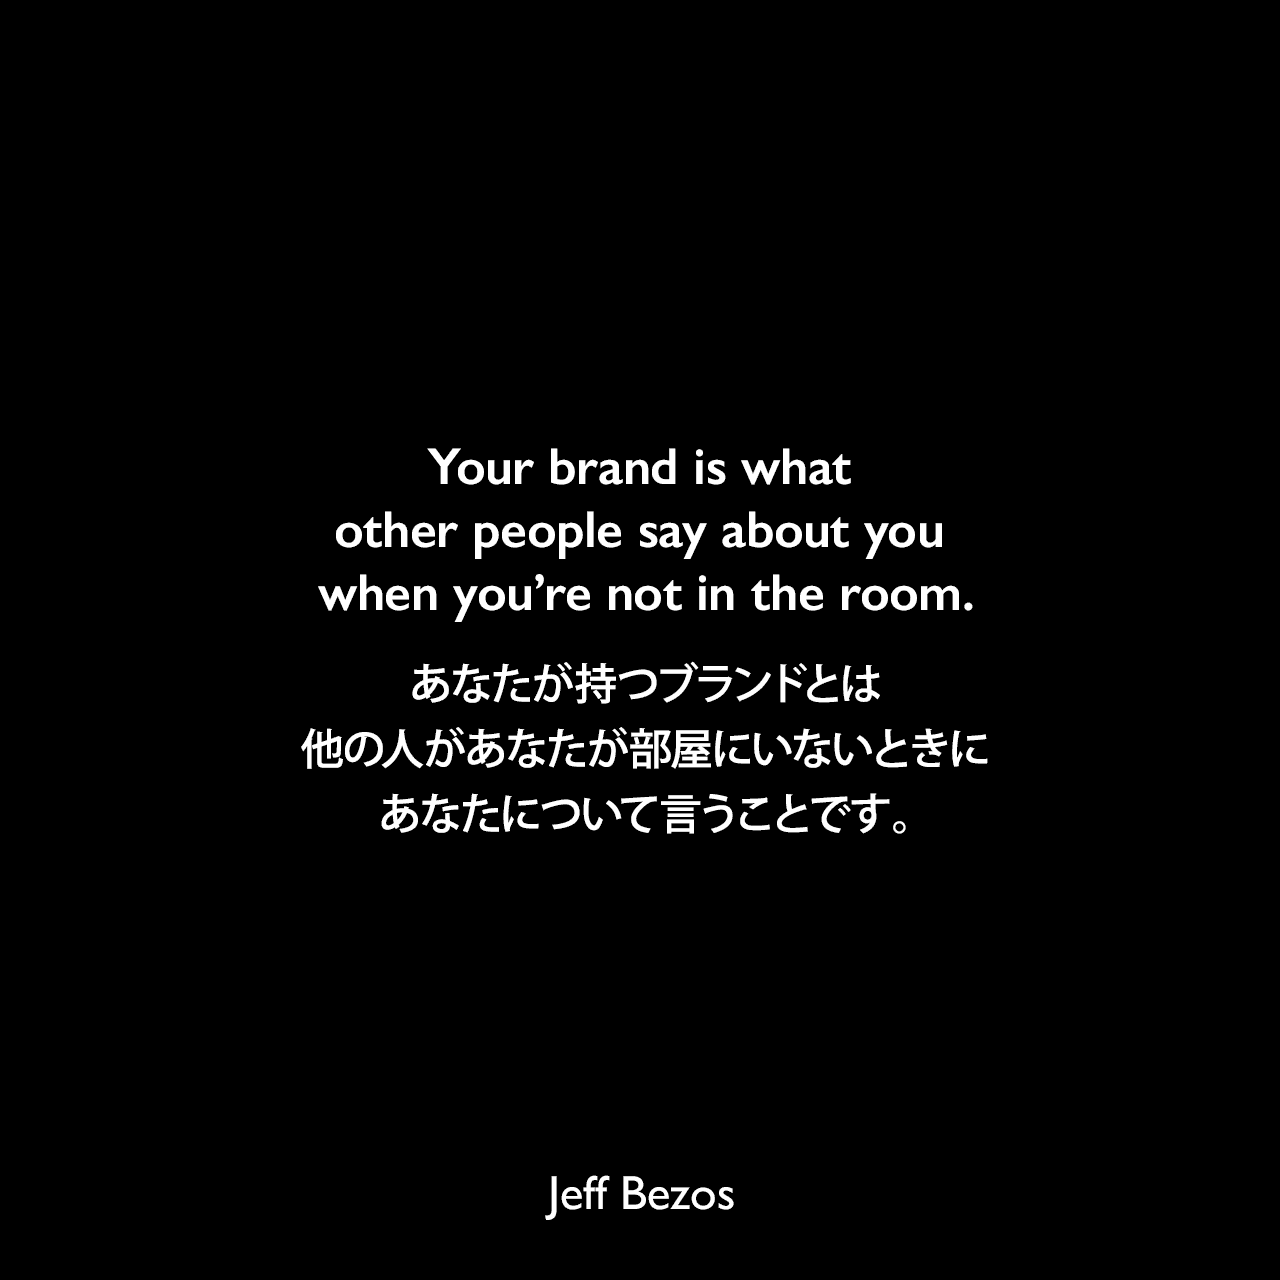 Your brand is what other people say about you when you're not in the room.あなたが持つブランドとは、他の人があなたが部屋にいないときにあなたについて言うことです。Jeff Bezos